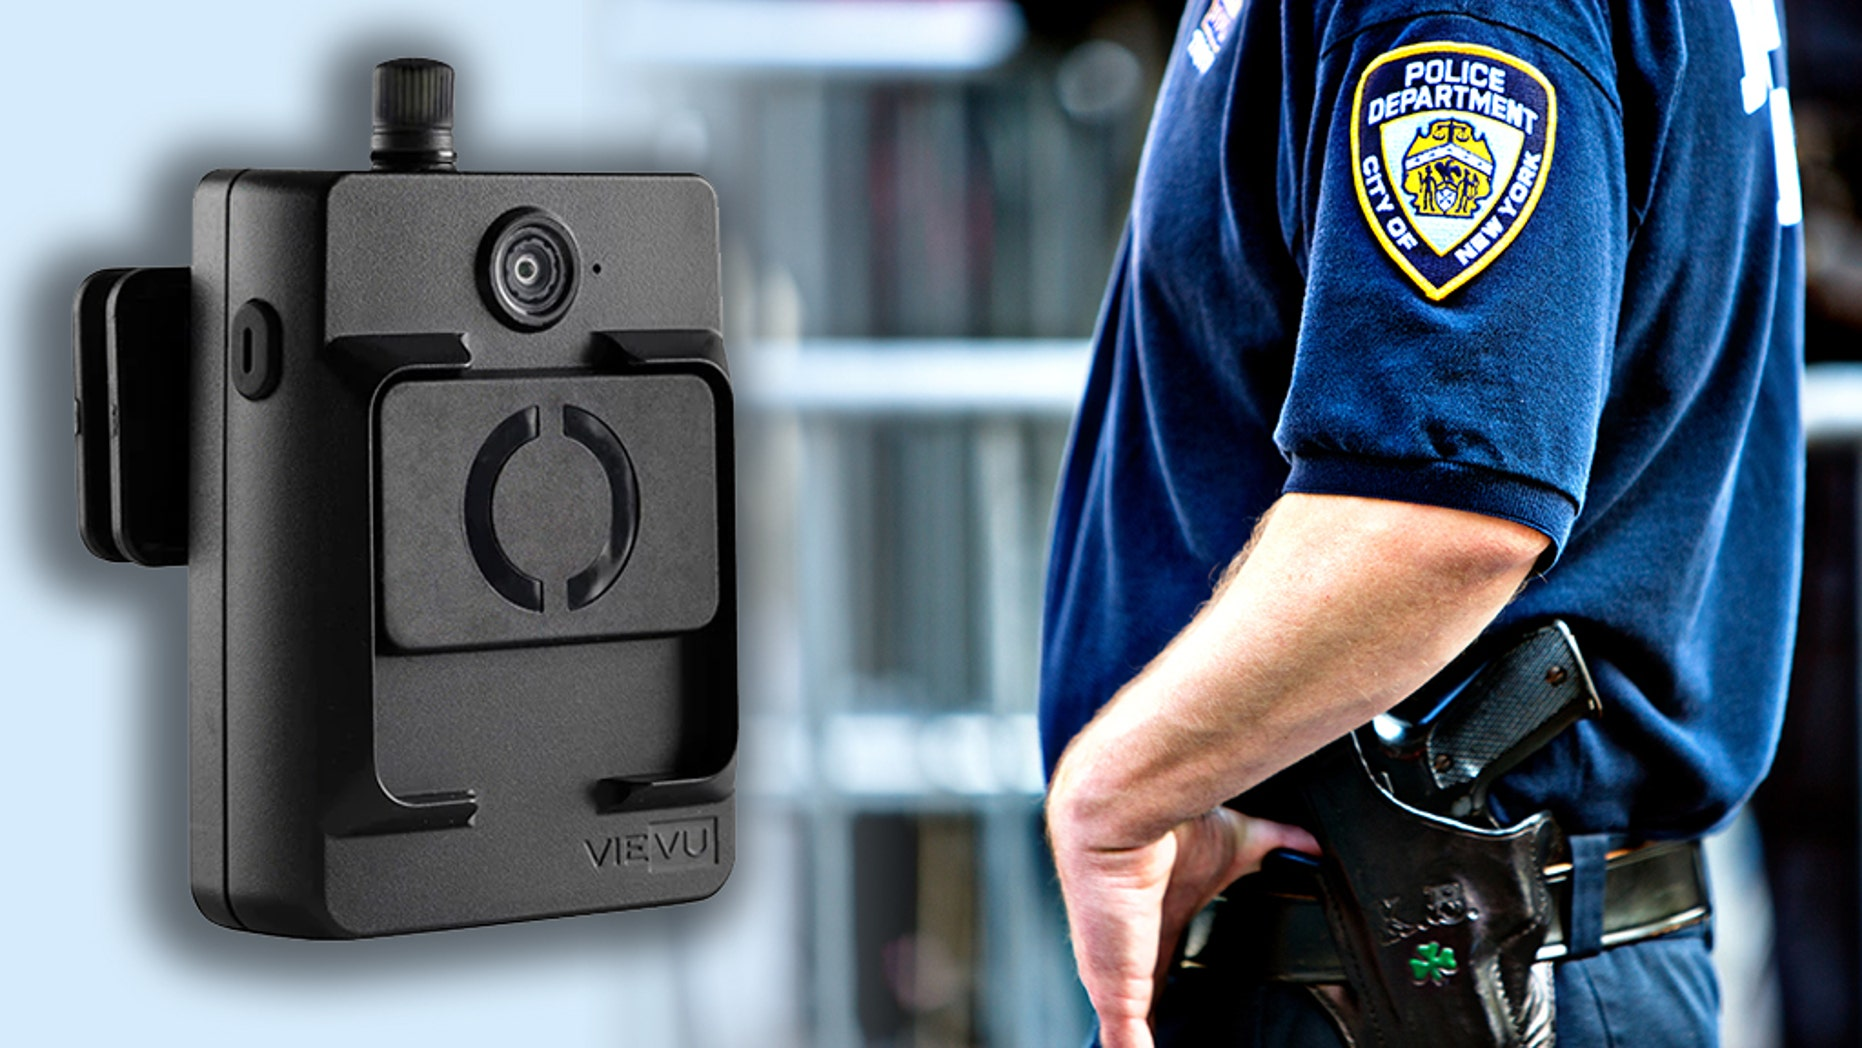 New York Police Department halts use of bodycams after 1 explodes